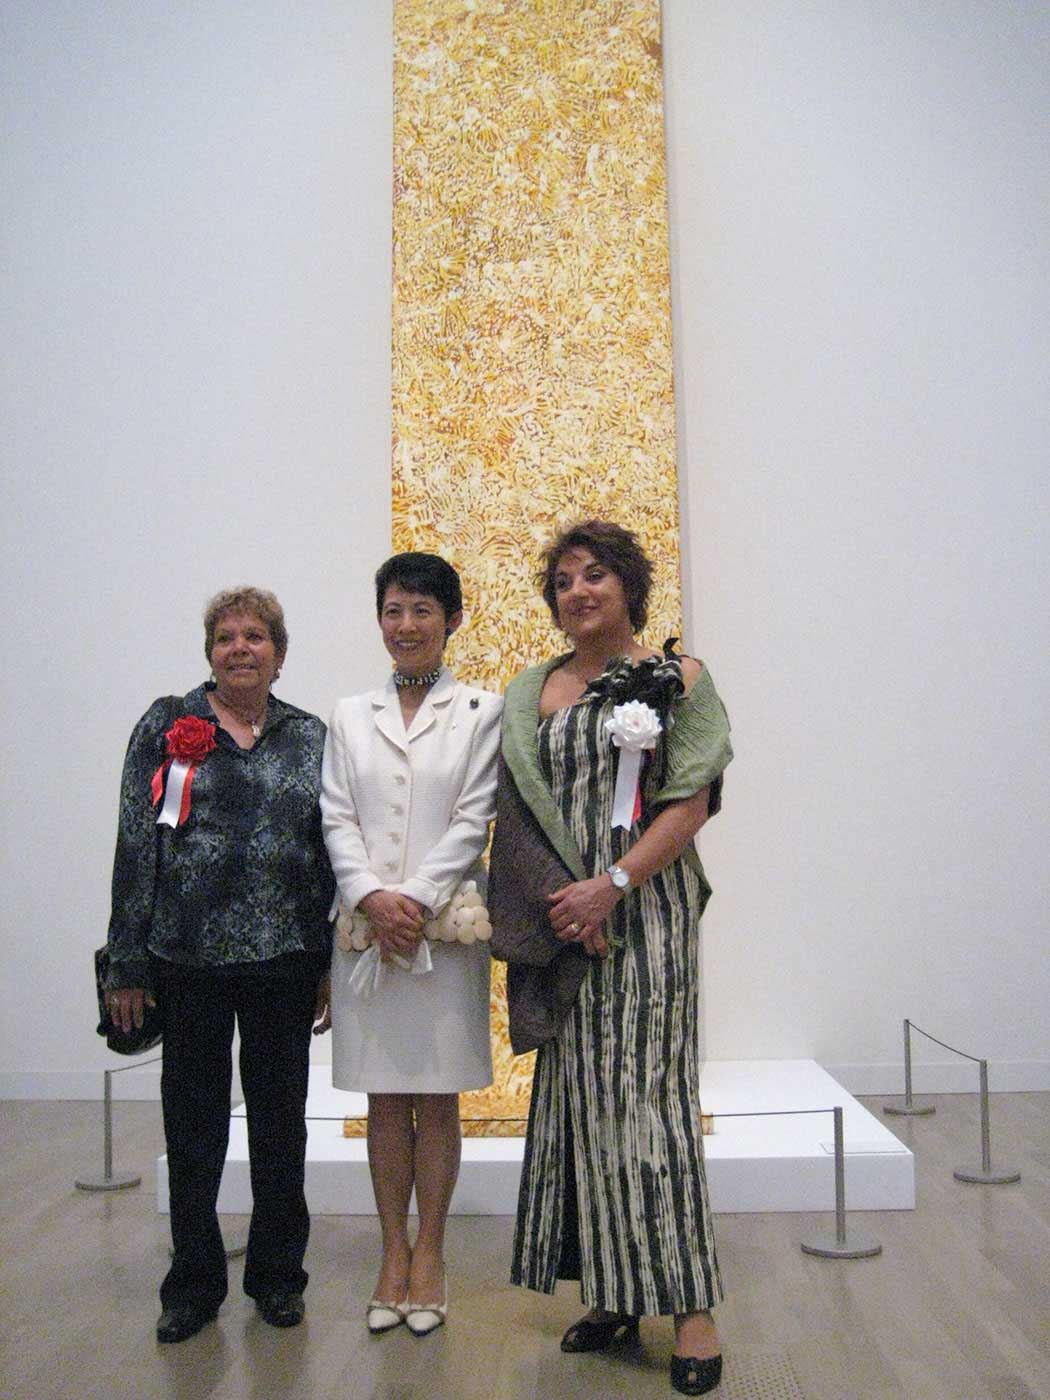 Three women standing in front of a painting. - click to view larger image